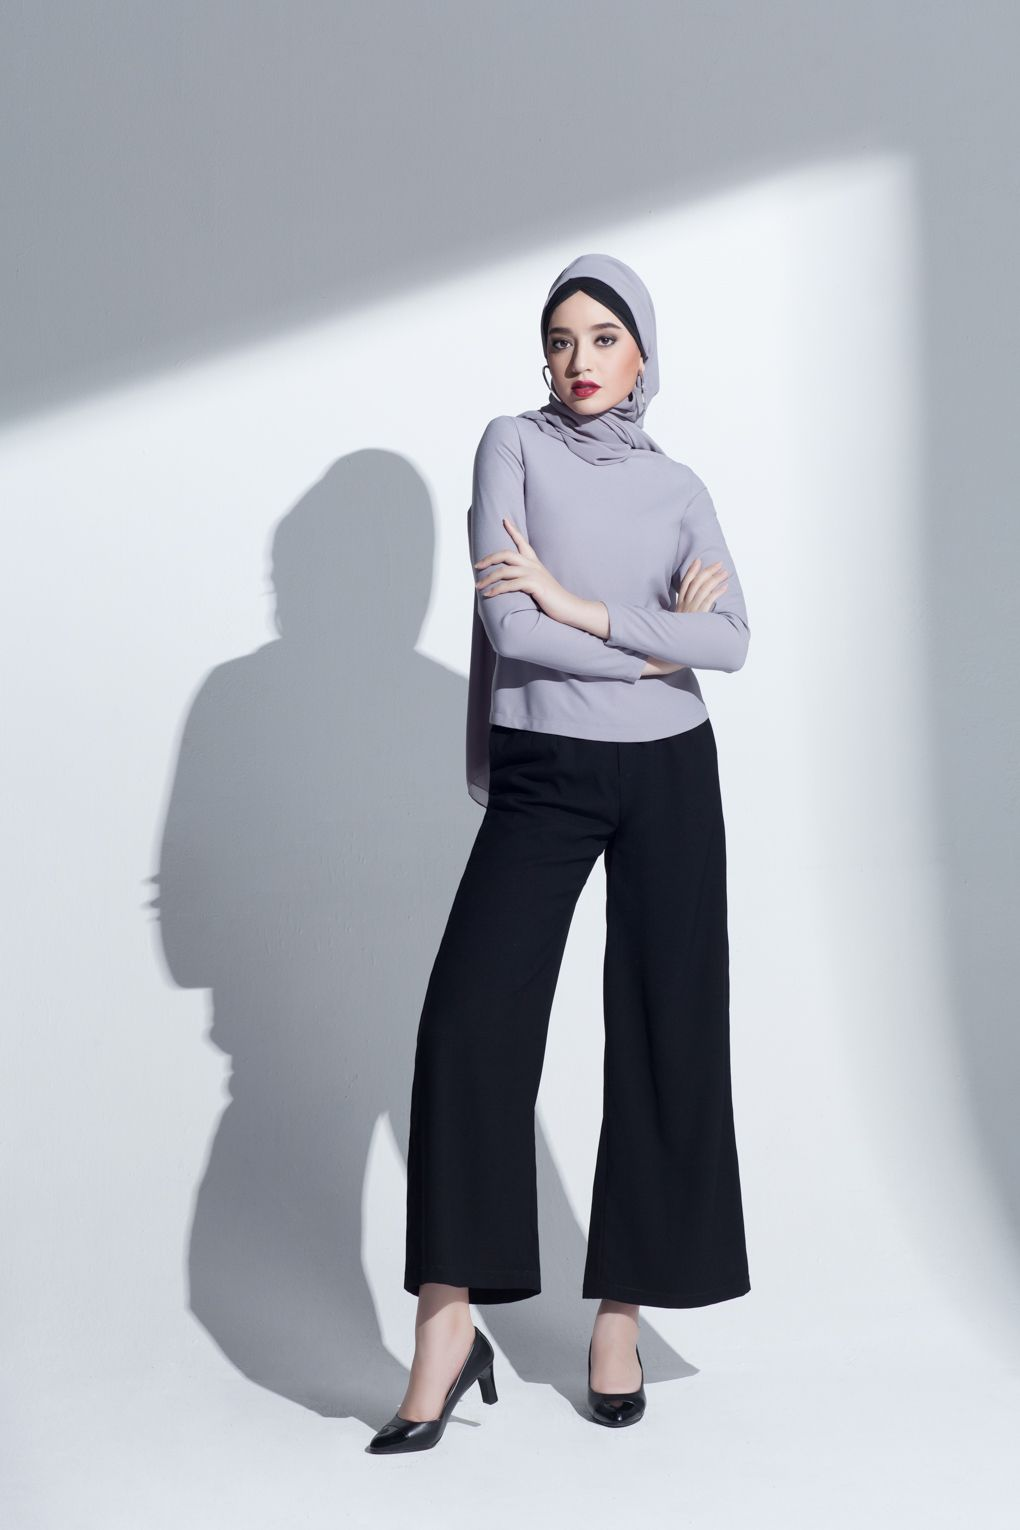 a88e5e744bed These wide leg trousers are perfect for any work outfit! #TAHIRA #modest  #trousers #wideleg